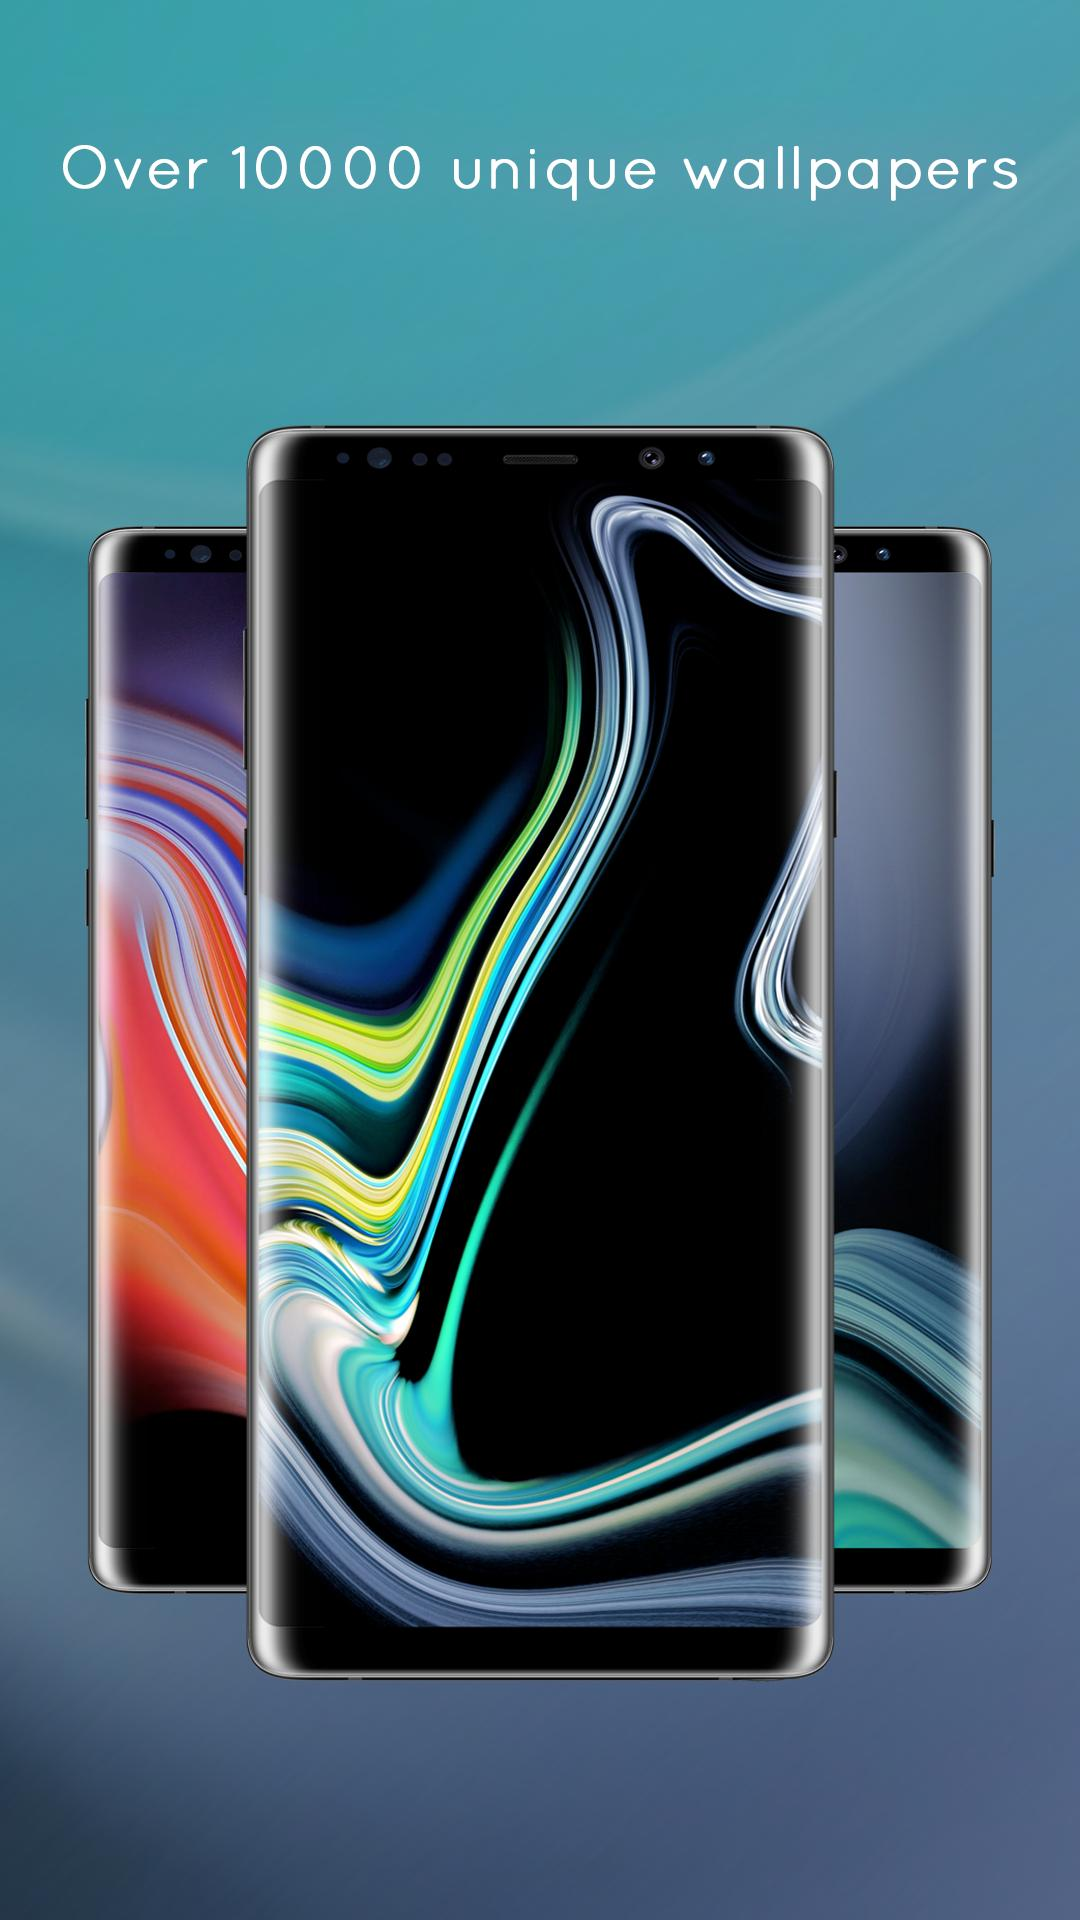 Galaxy Note 9 Wallpaper For Android Apk Download